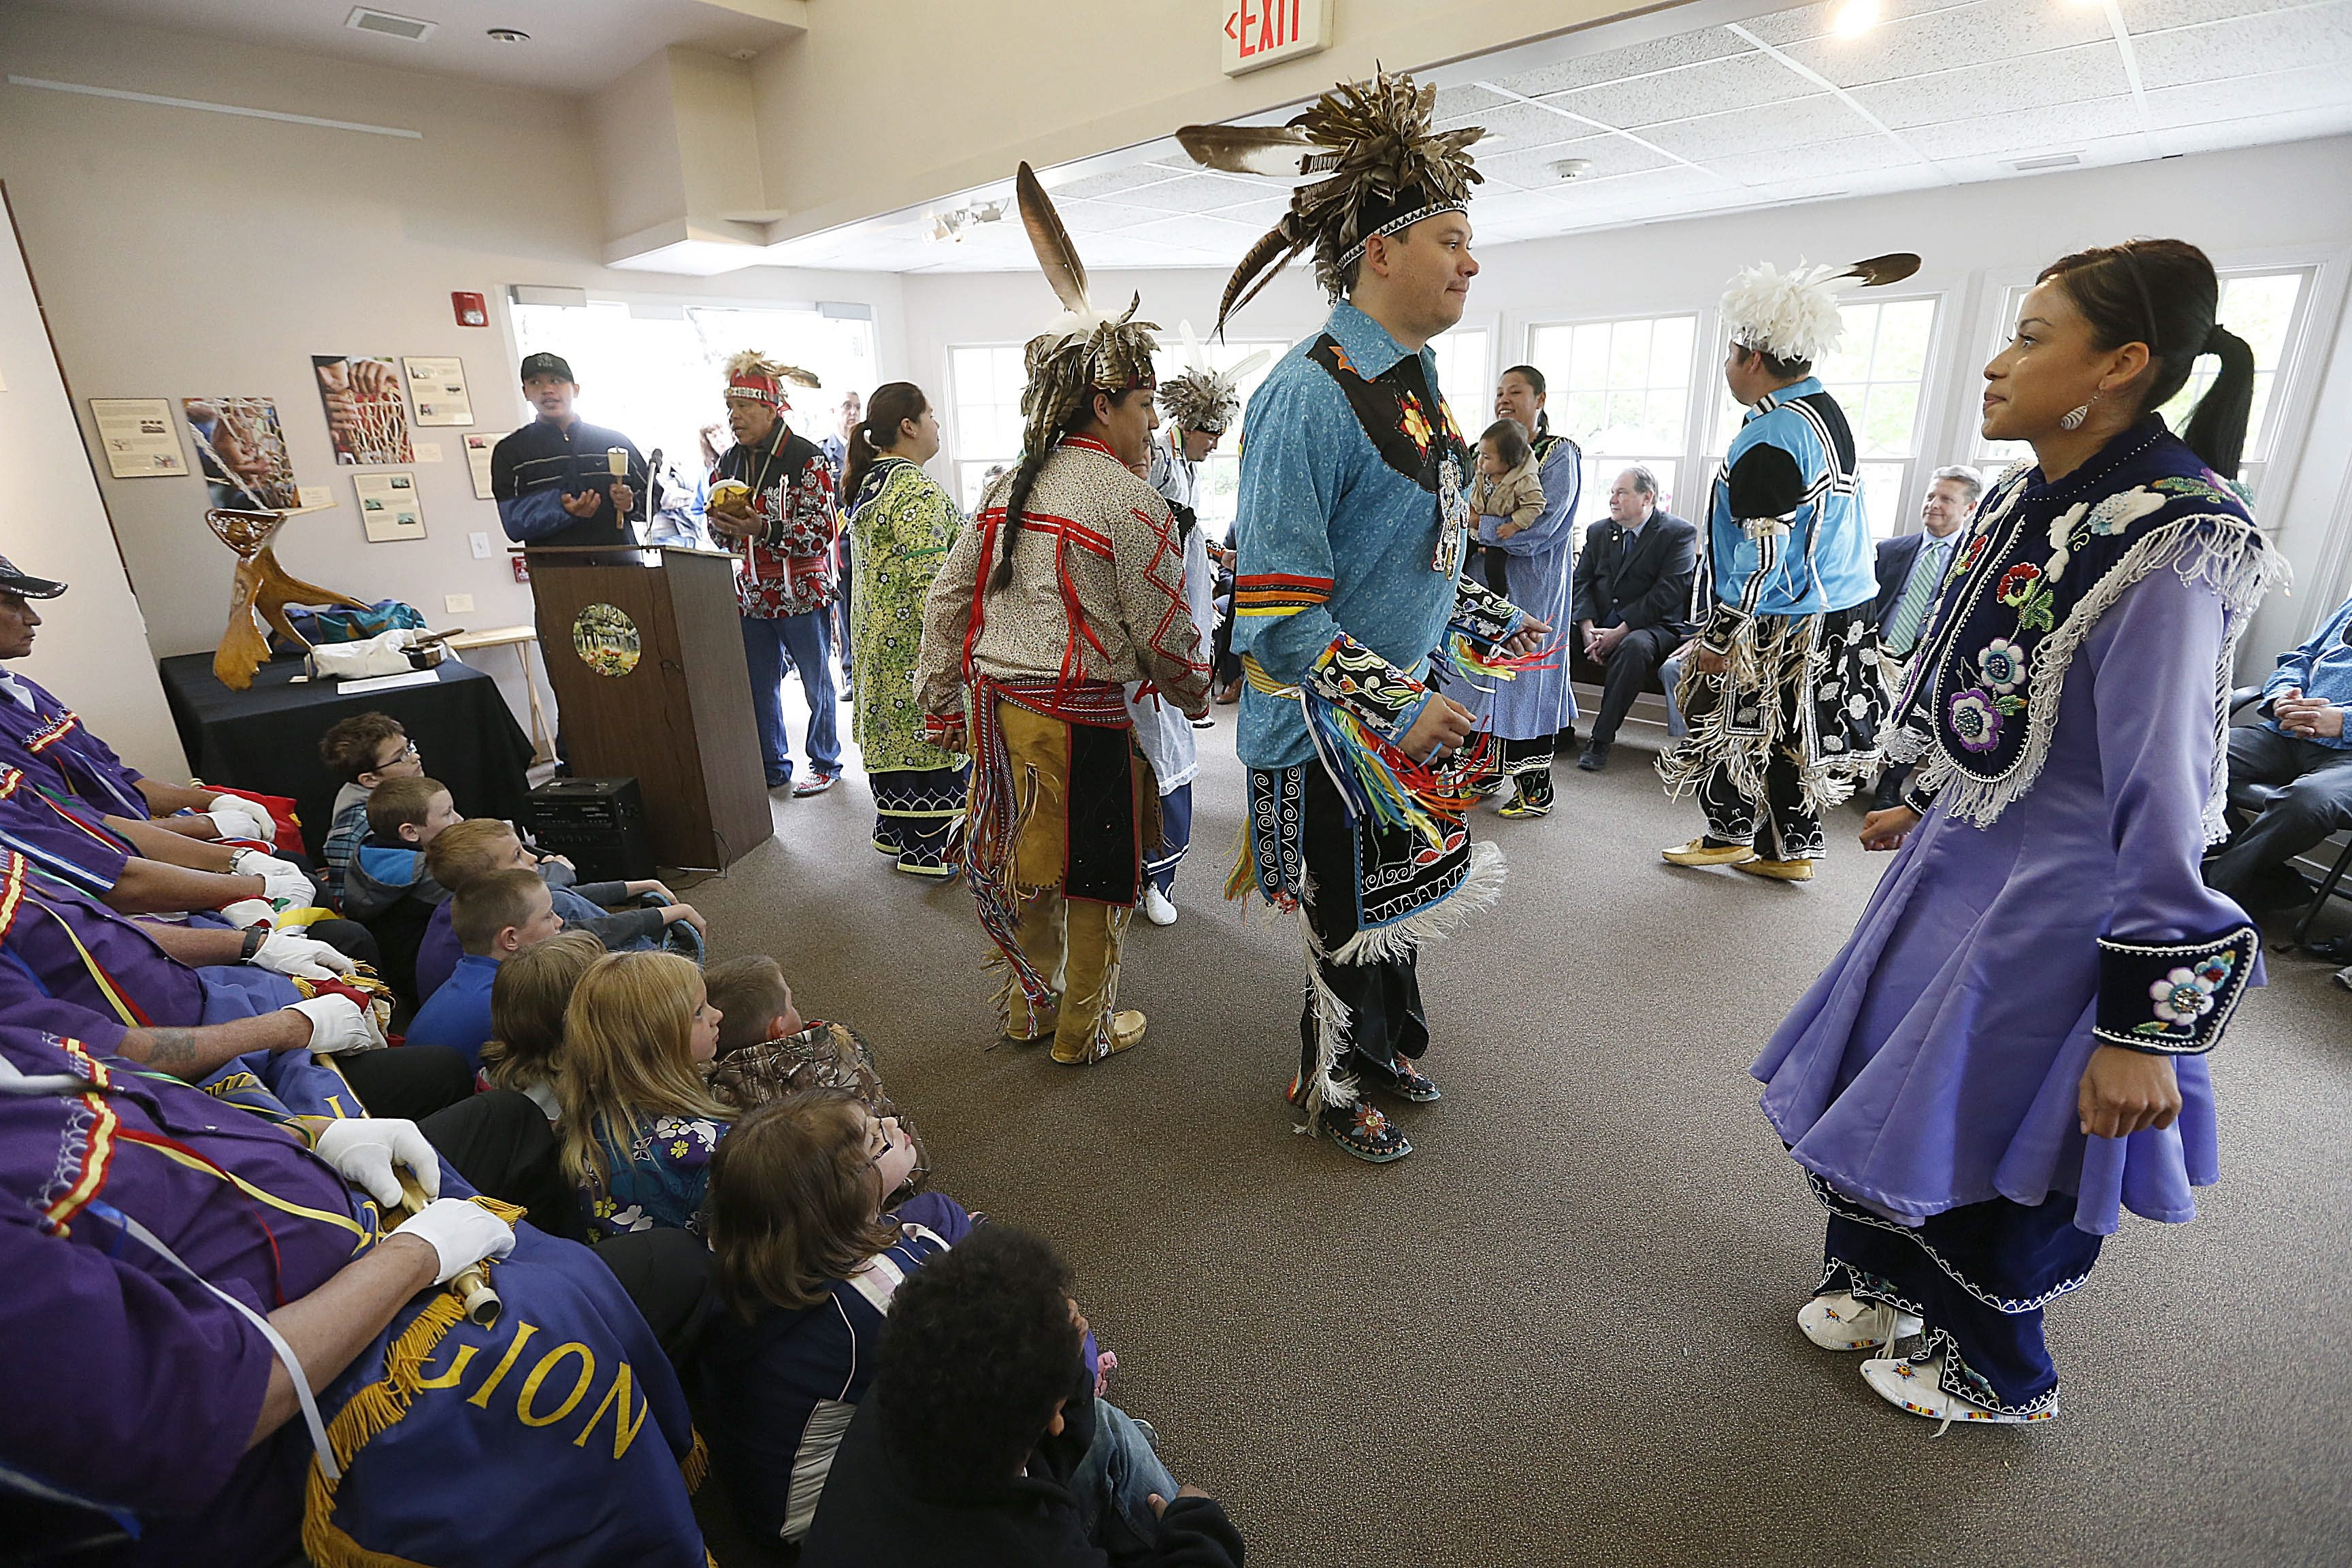 Iroquois traditional dancers perform during the annual Buffalo Creek Treaty of 1842 commemoration ceremony at the Burchfield Nature & Art Center in West Seneca on Friday.